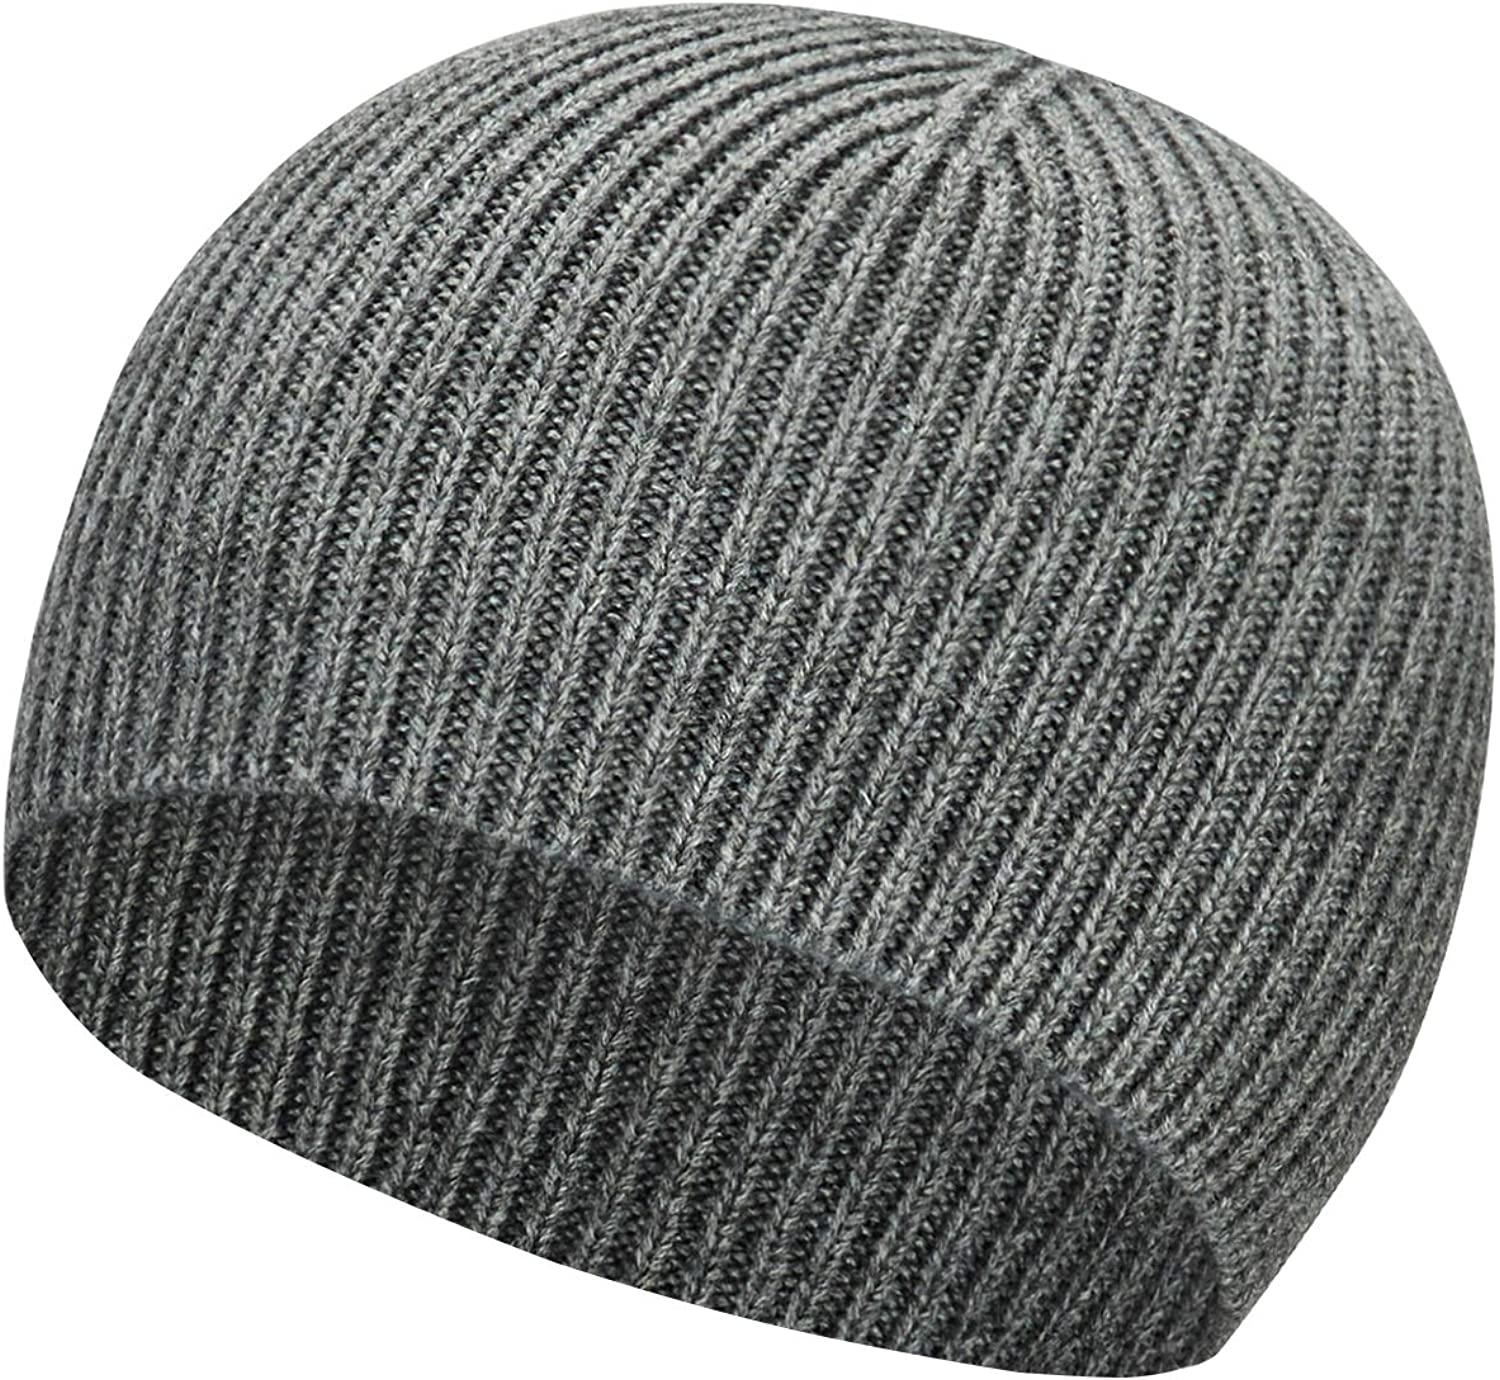 DRIONO Wool Beanie Hat – Brimless shipfree Sk Knitted Unisex Slouchy Max 45% OFF